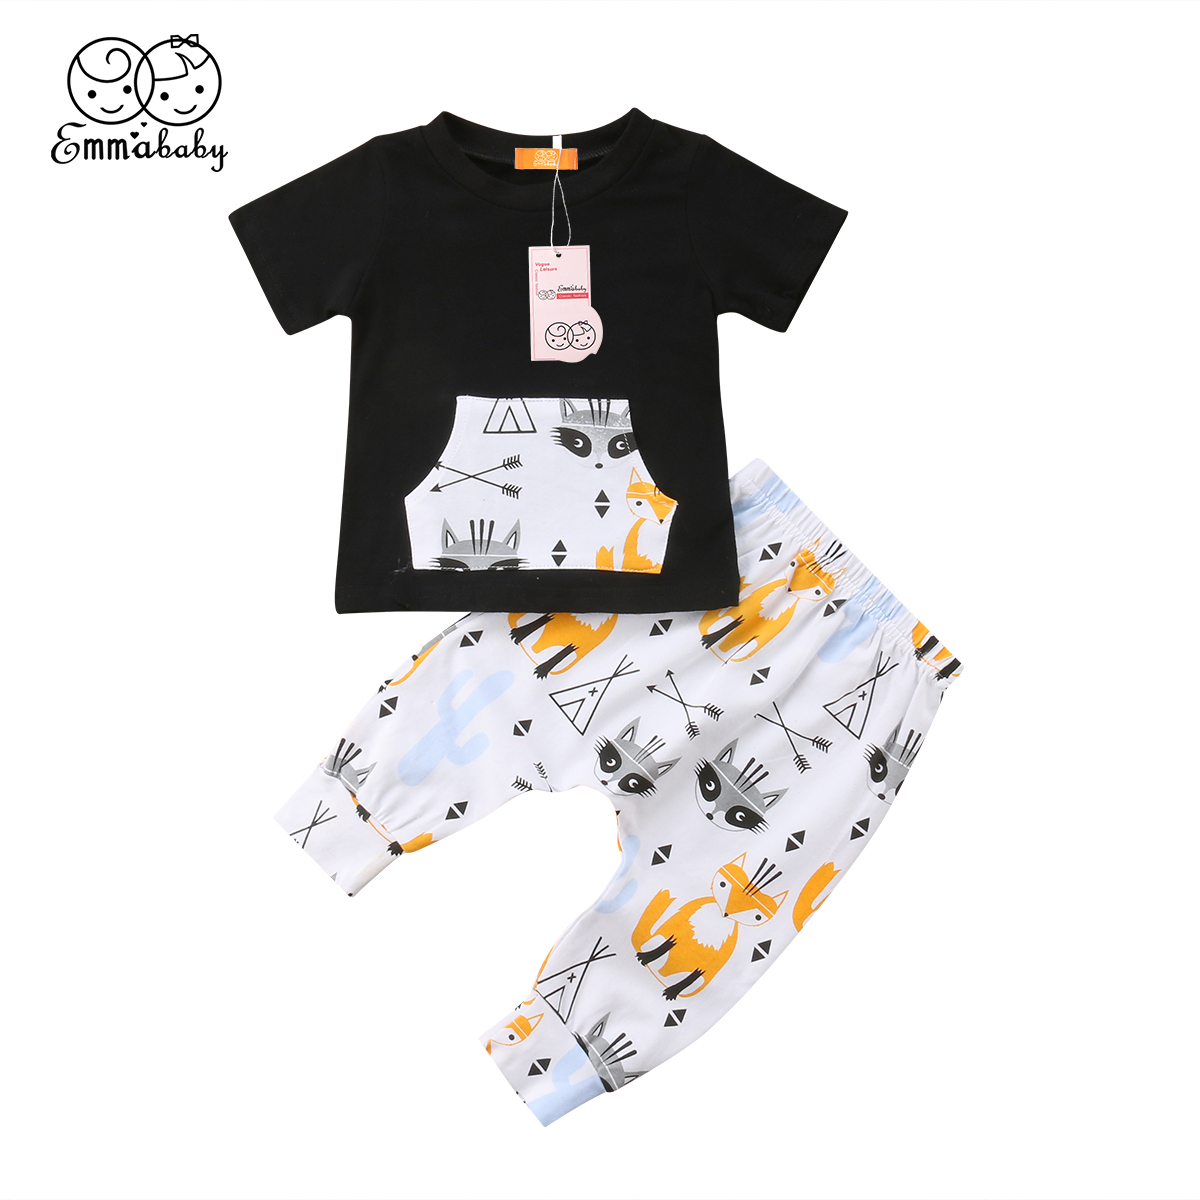 Mother & Kids Boys' Clothing Adaptable Muqgew 2pcs Toddler Kids Baby Boys Clothes Summer Fashion Monkey T-shirt Tops+pants Outfits Clothes Set Children Clothing For Fast Shipping